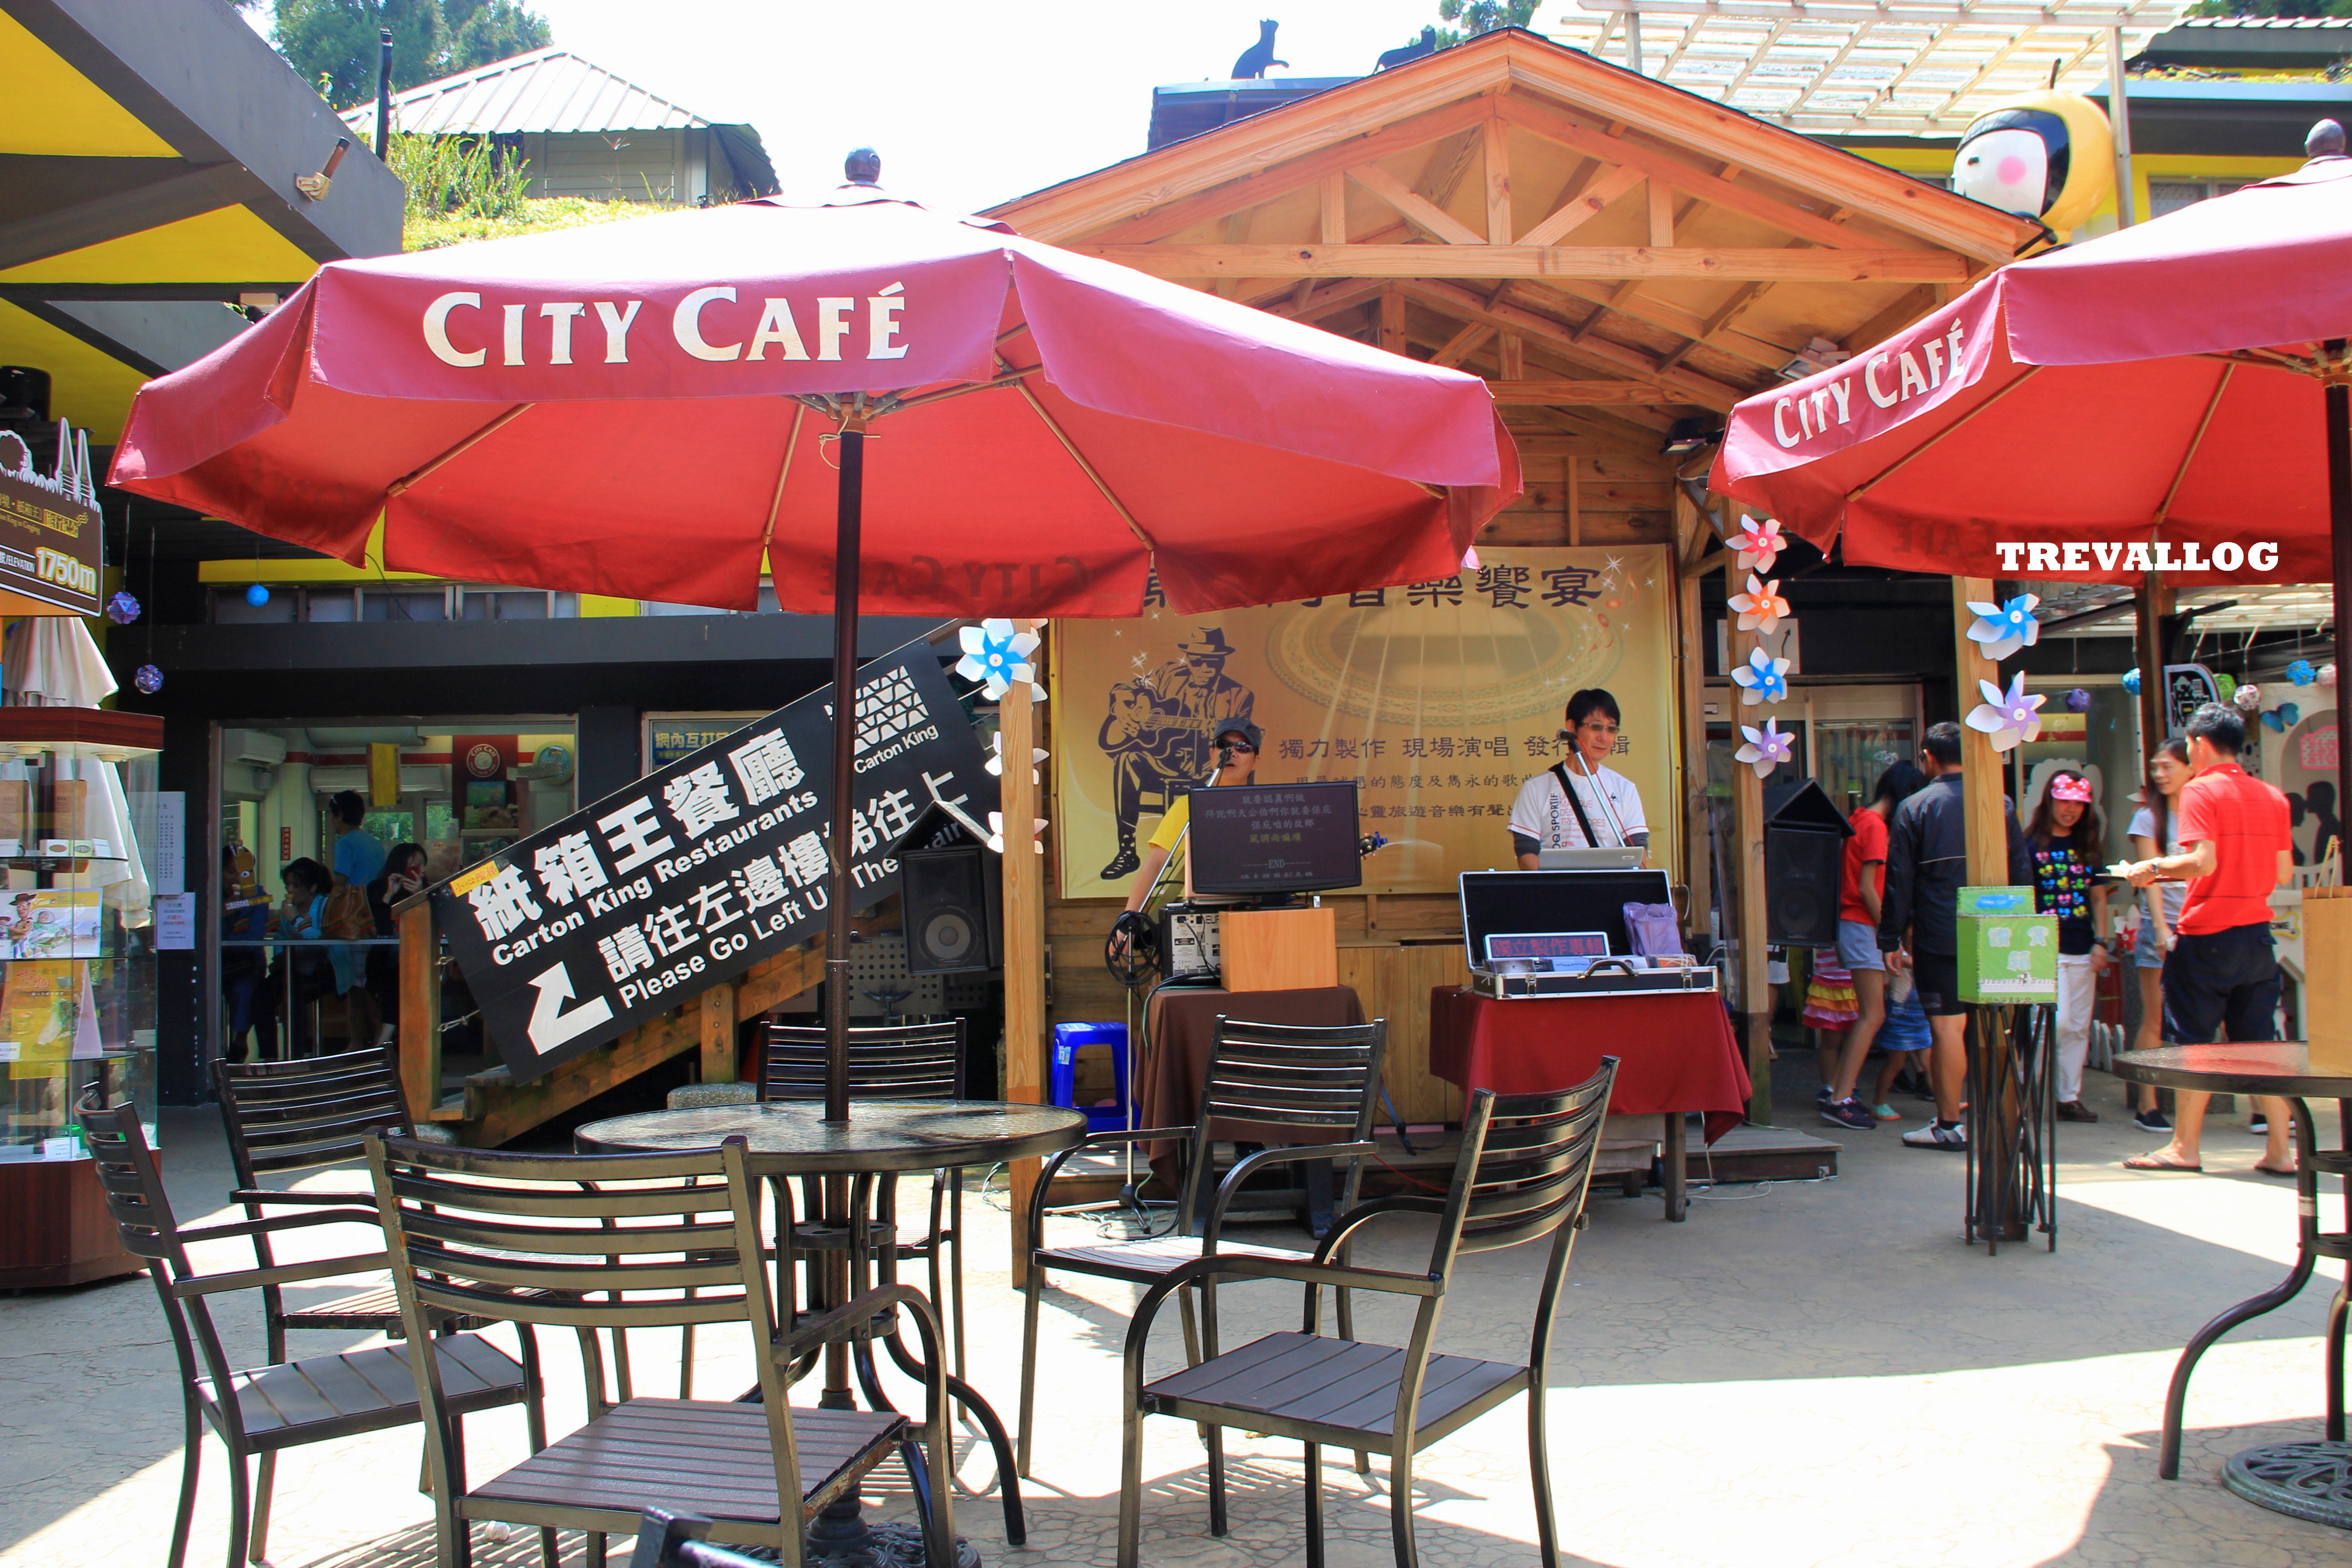 City Cafe in front of Little Swiss Garden where we had our bento lunch, accompanied by live performance